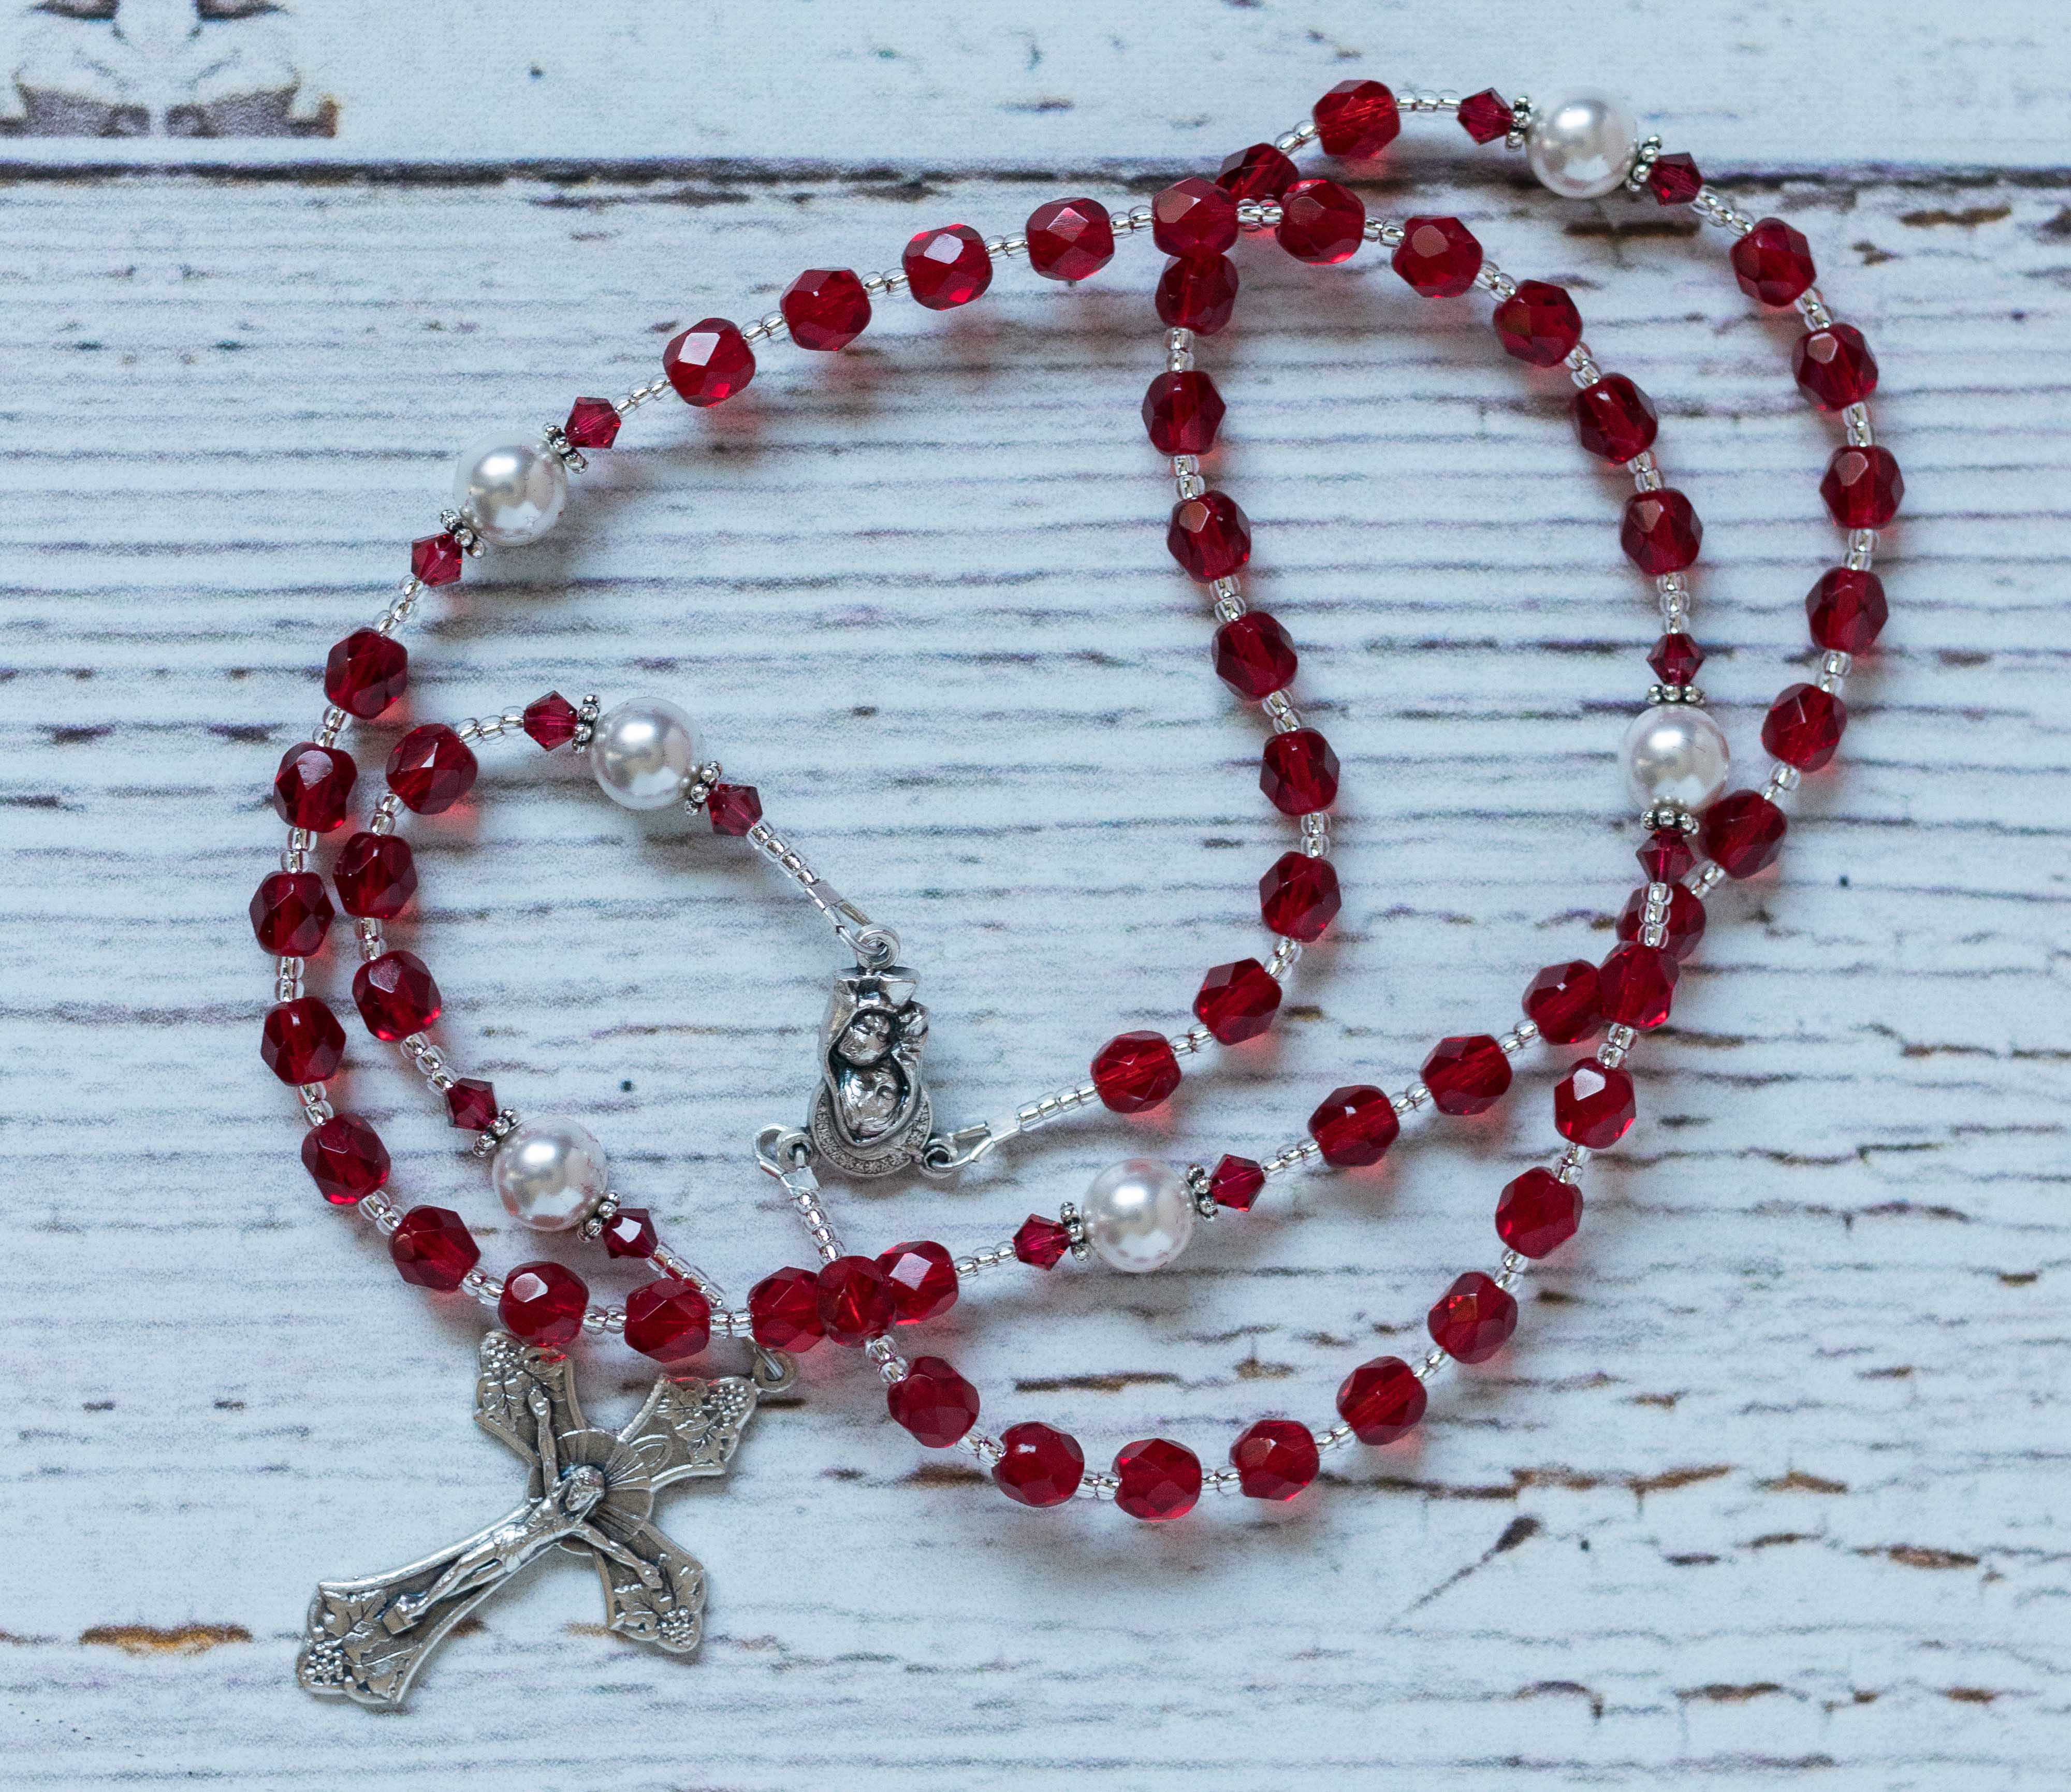 Mother's Day Gift Ideas for Birth Moms - Custom Rosary via RosaryGardenCathy on Etsy | https://www.roseclearfield.com